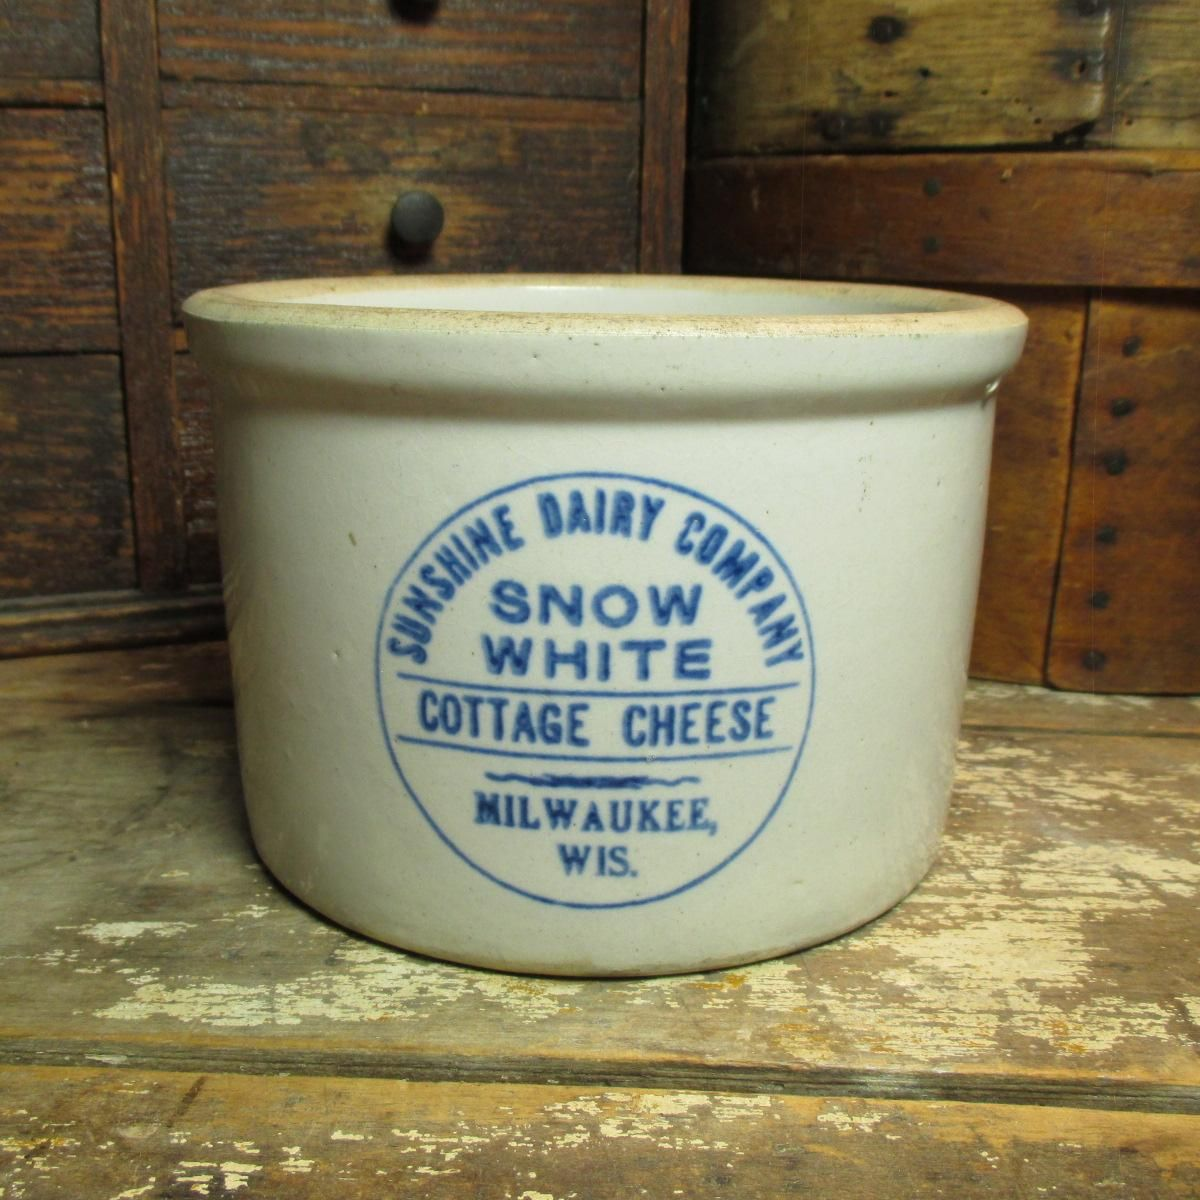 Super Old SNOW WHITE Cottage Cheese Advertising Crock - Sunshine ...